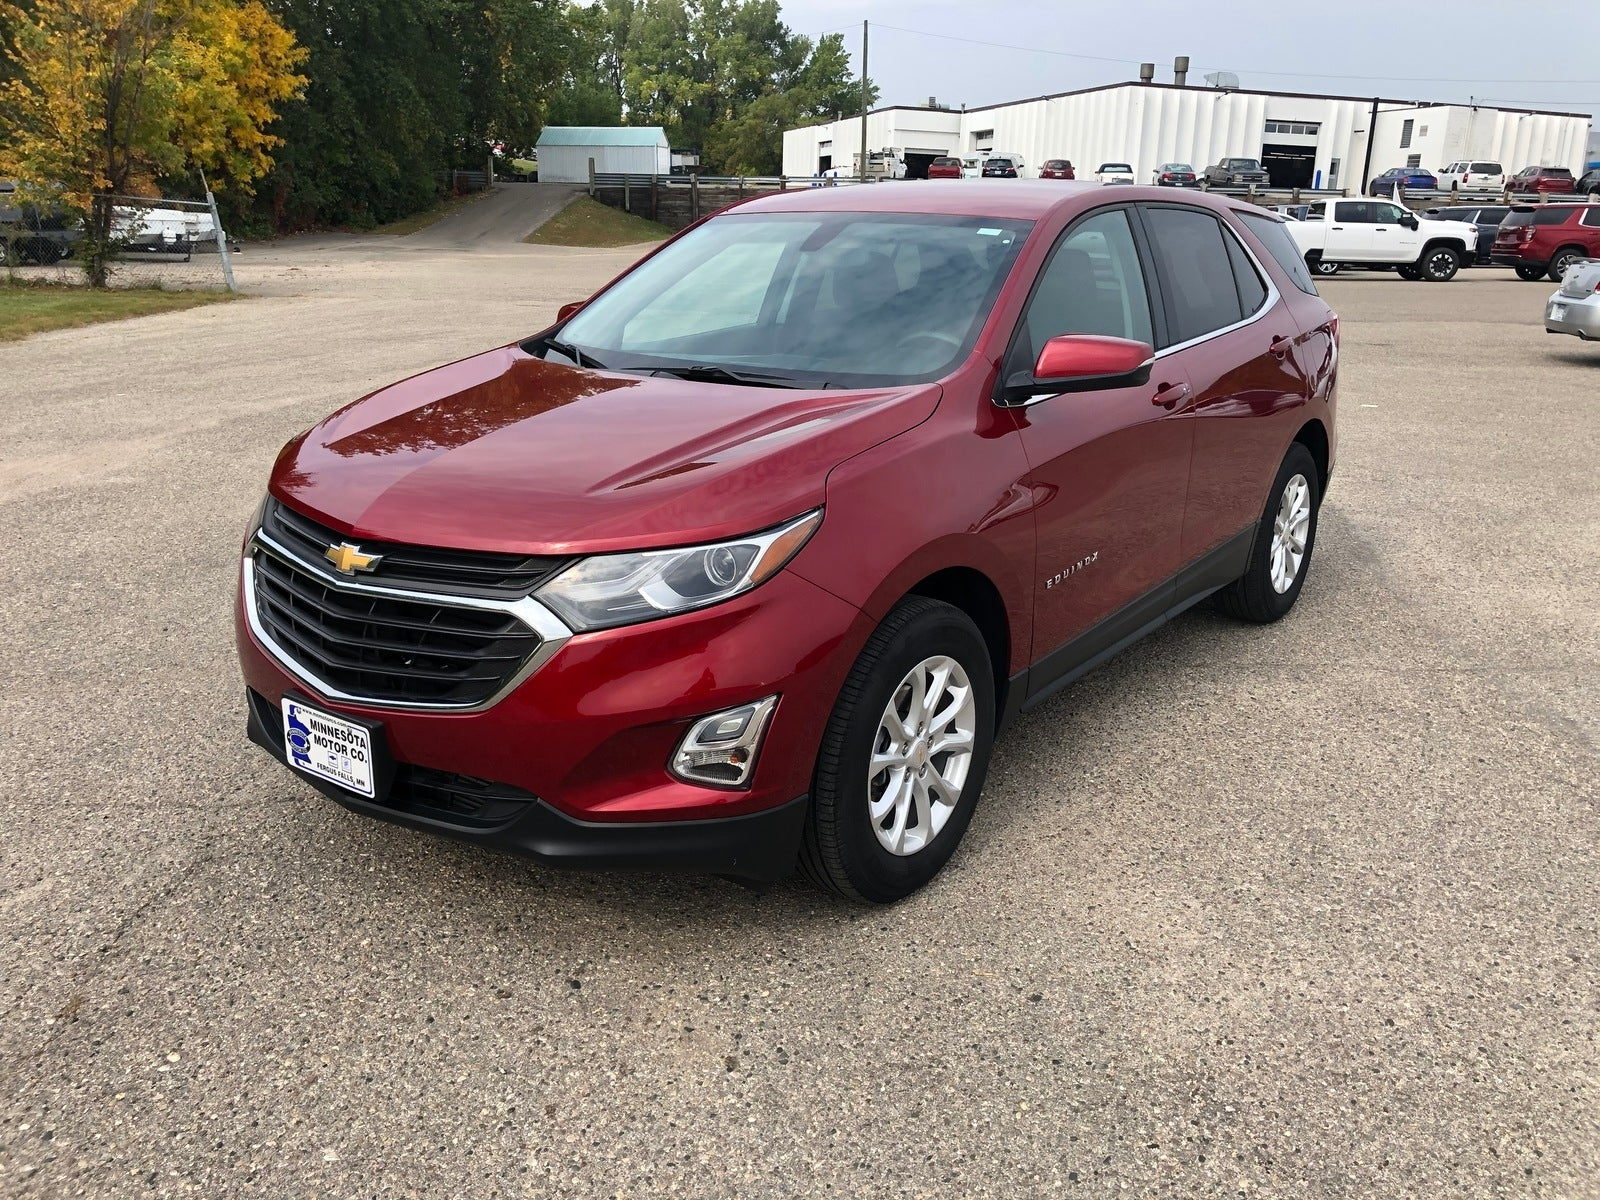 chevrolet vehicle inventory fergus falls chevrolet dealer in fergus falls mn new and used chevrolet dealership fargo detroit lakes alexandria mn fergus falls mn